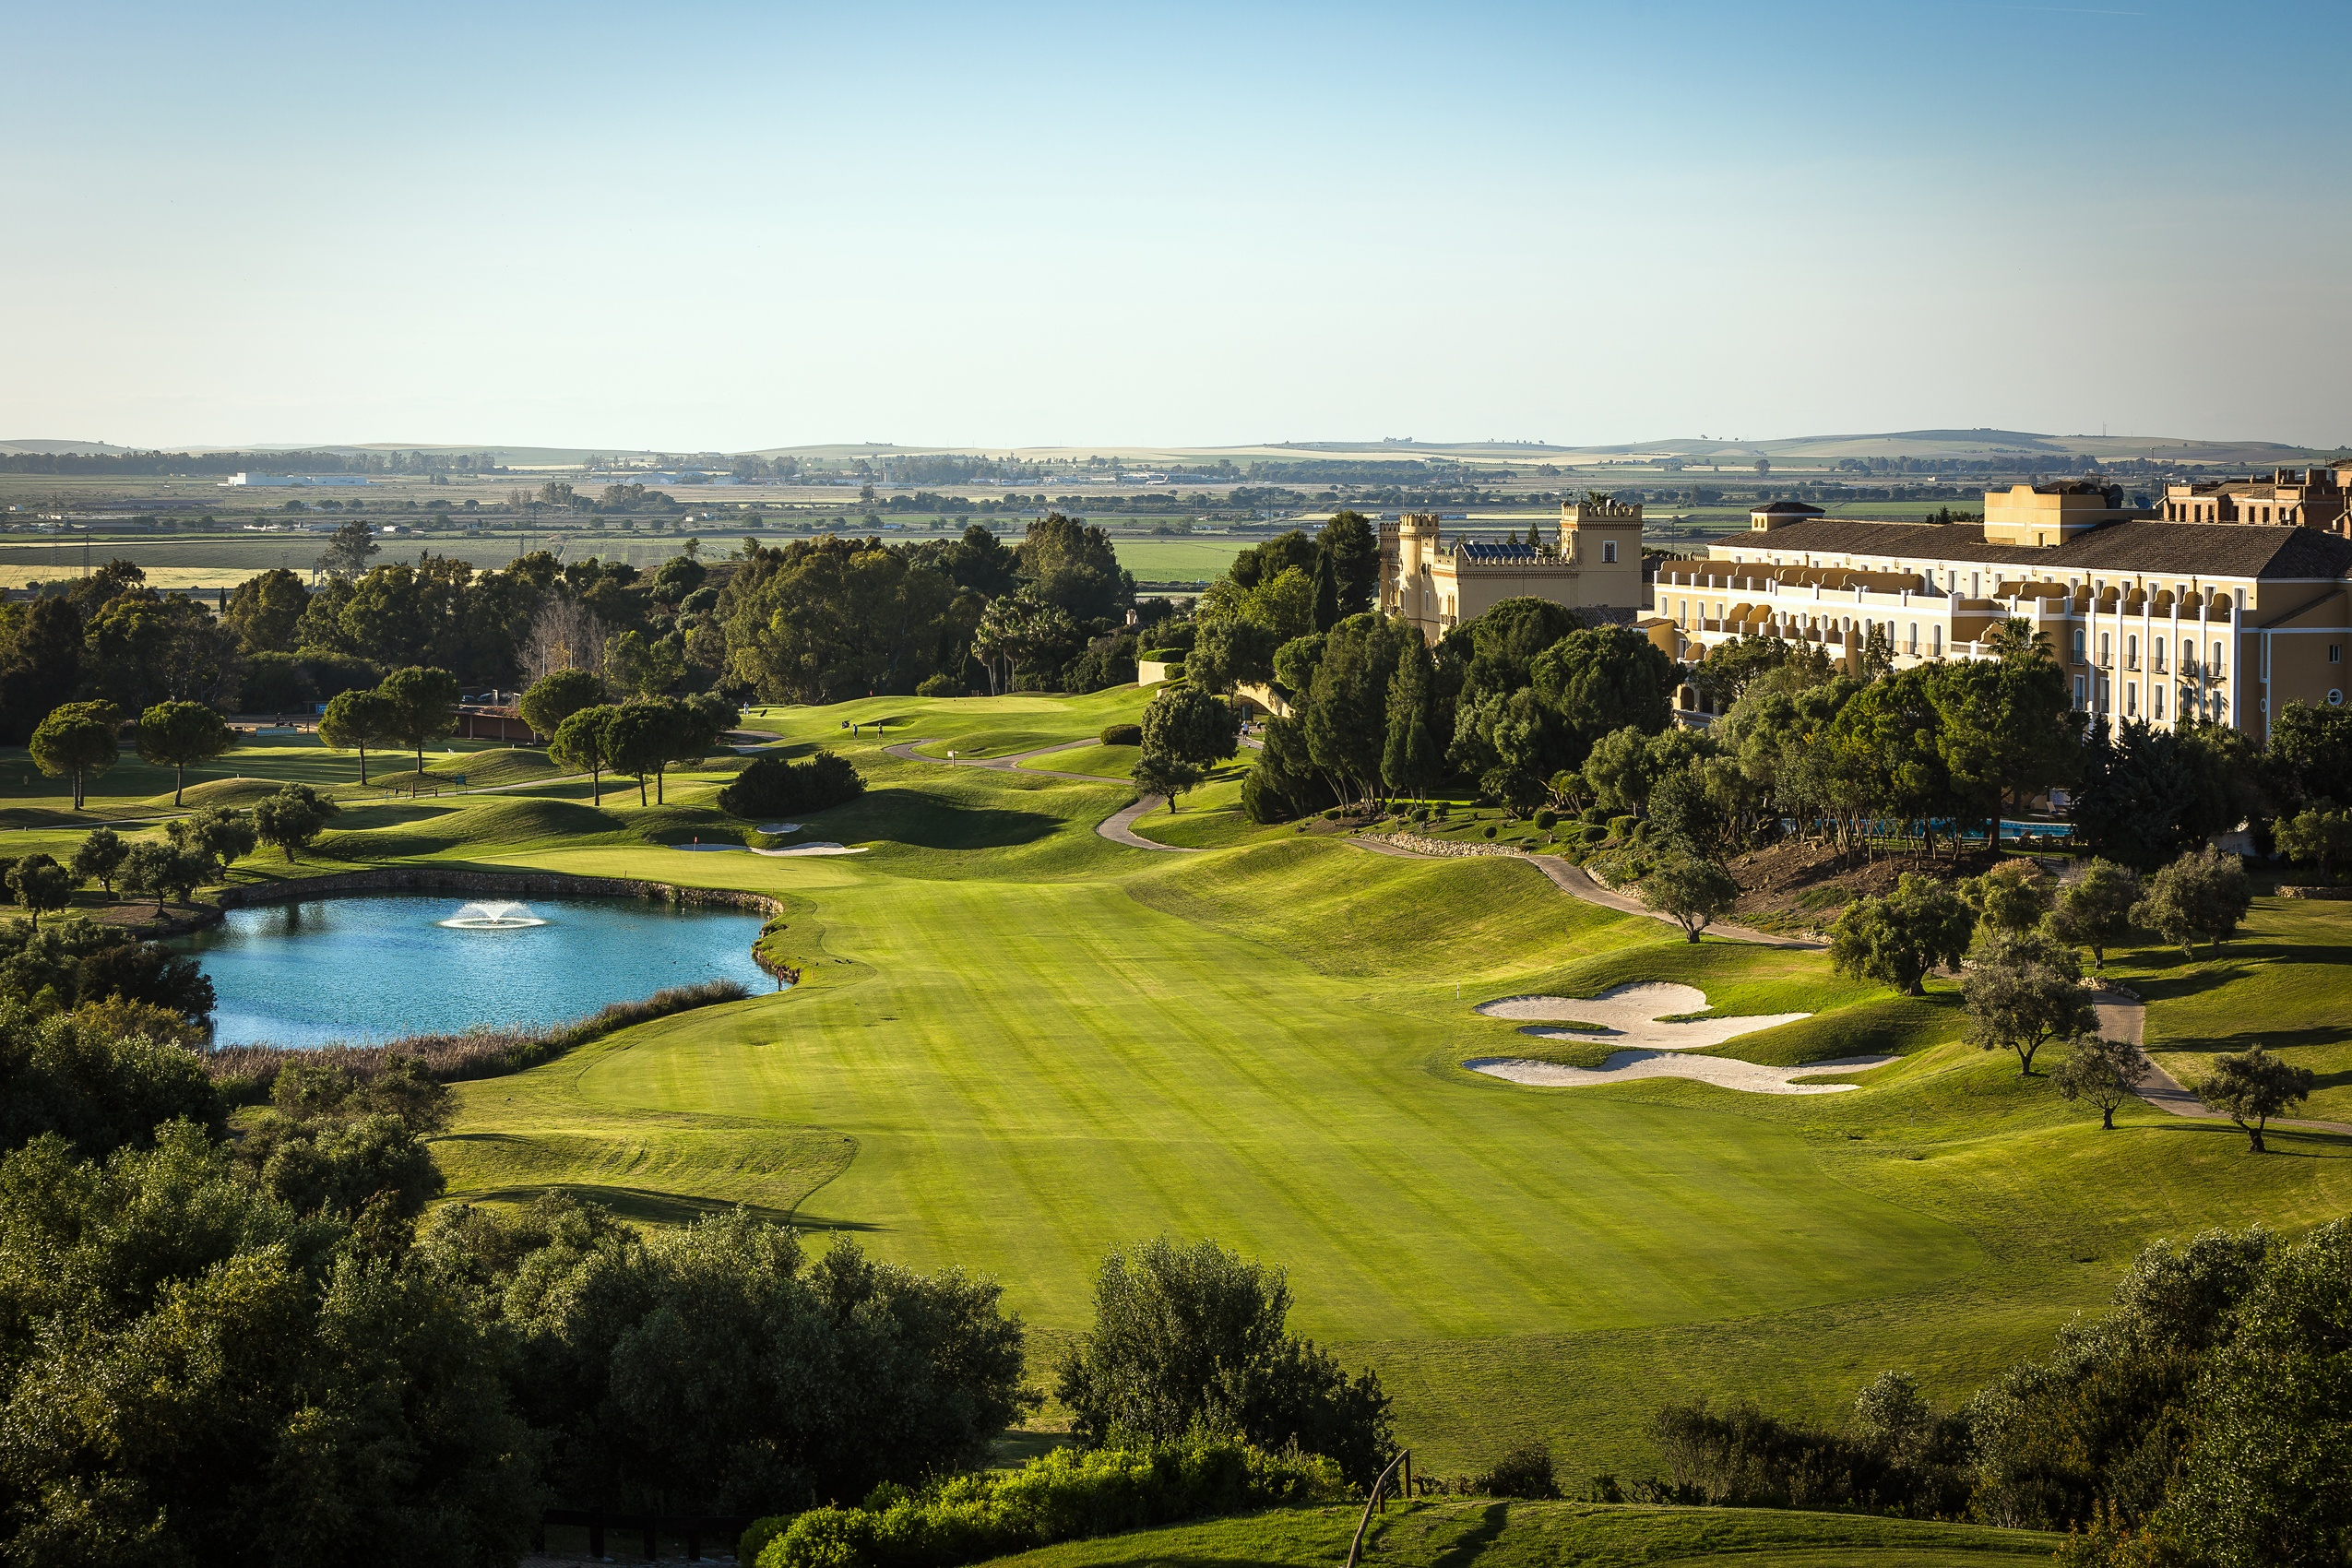 Montecastillo Hotel and Golf Course